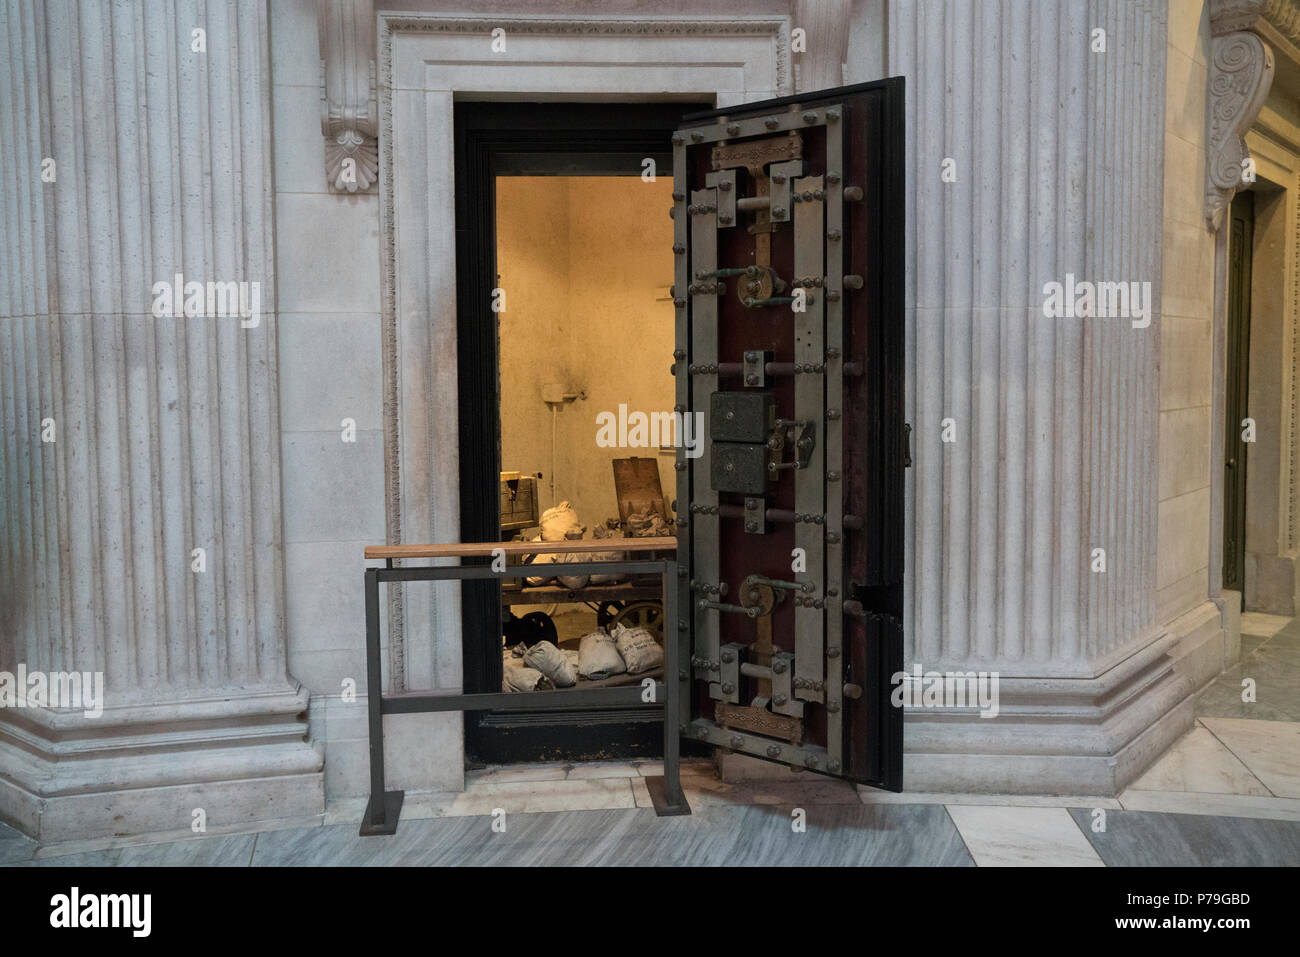 A vault in Federal Hall National Memorial in Manhattan's Financial District shows its former use to store currency. Federal Hall is now a museum. - Stock Image